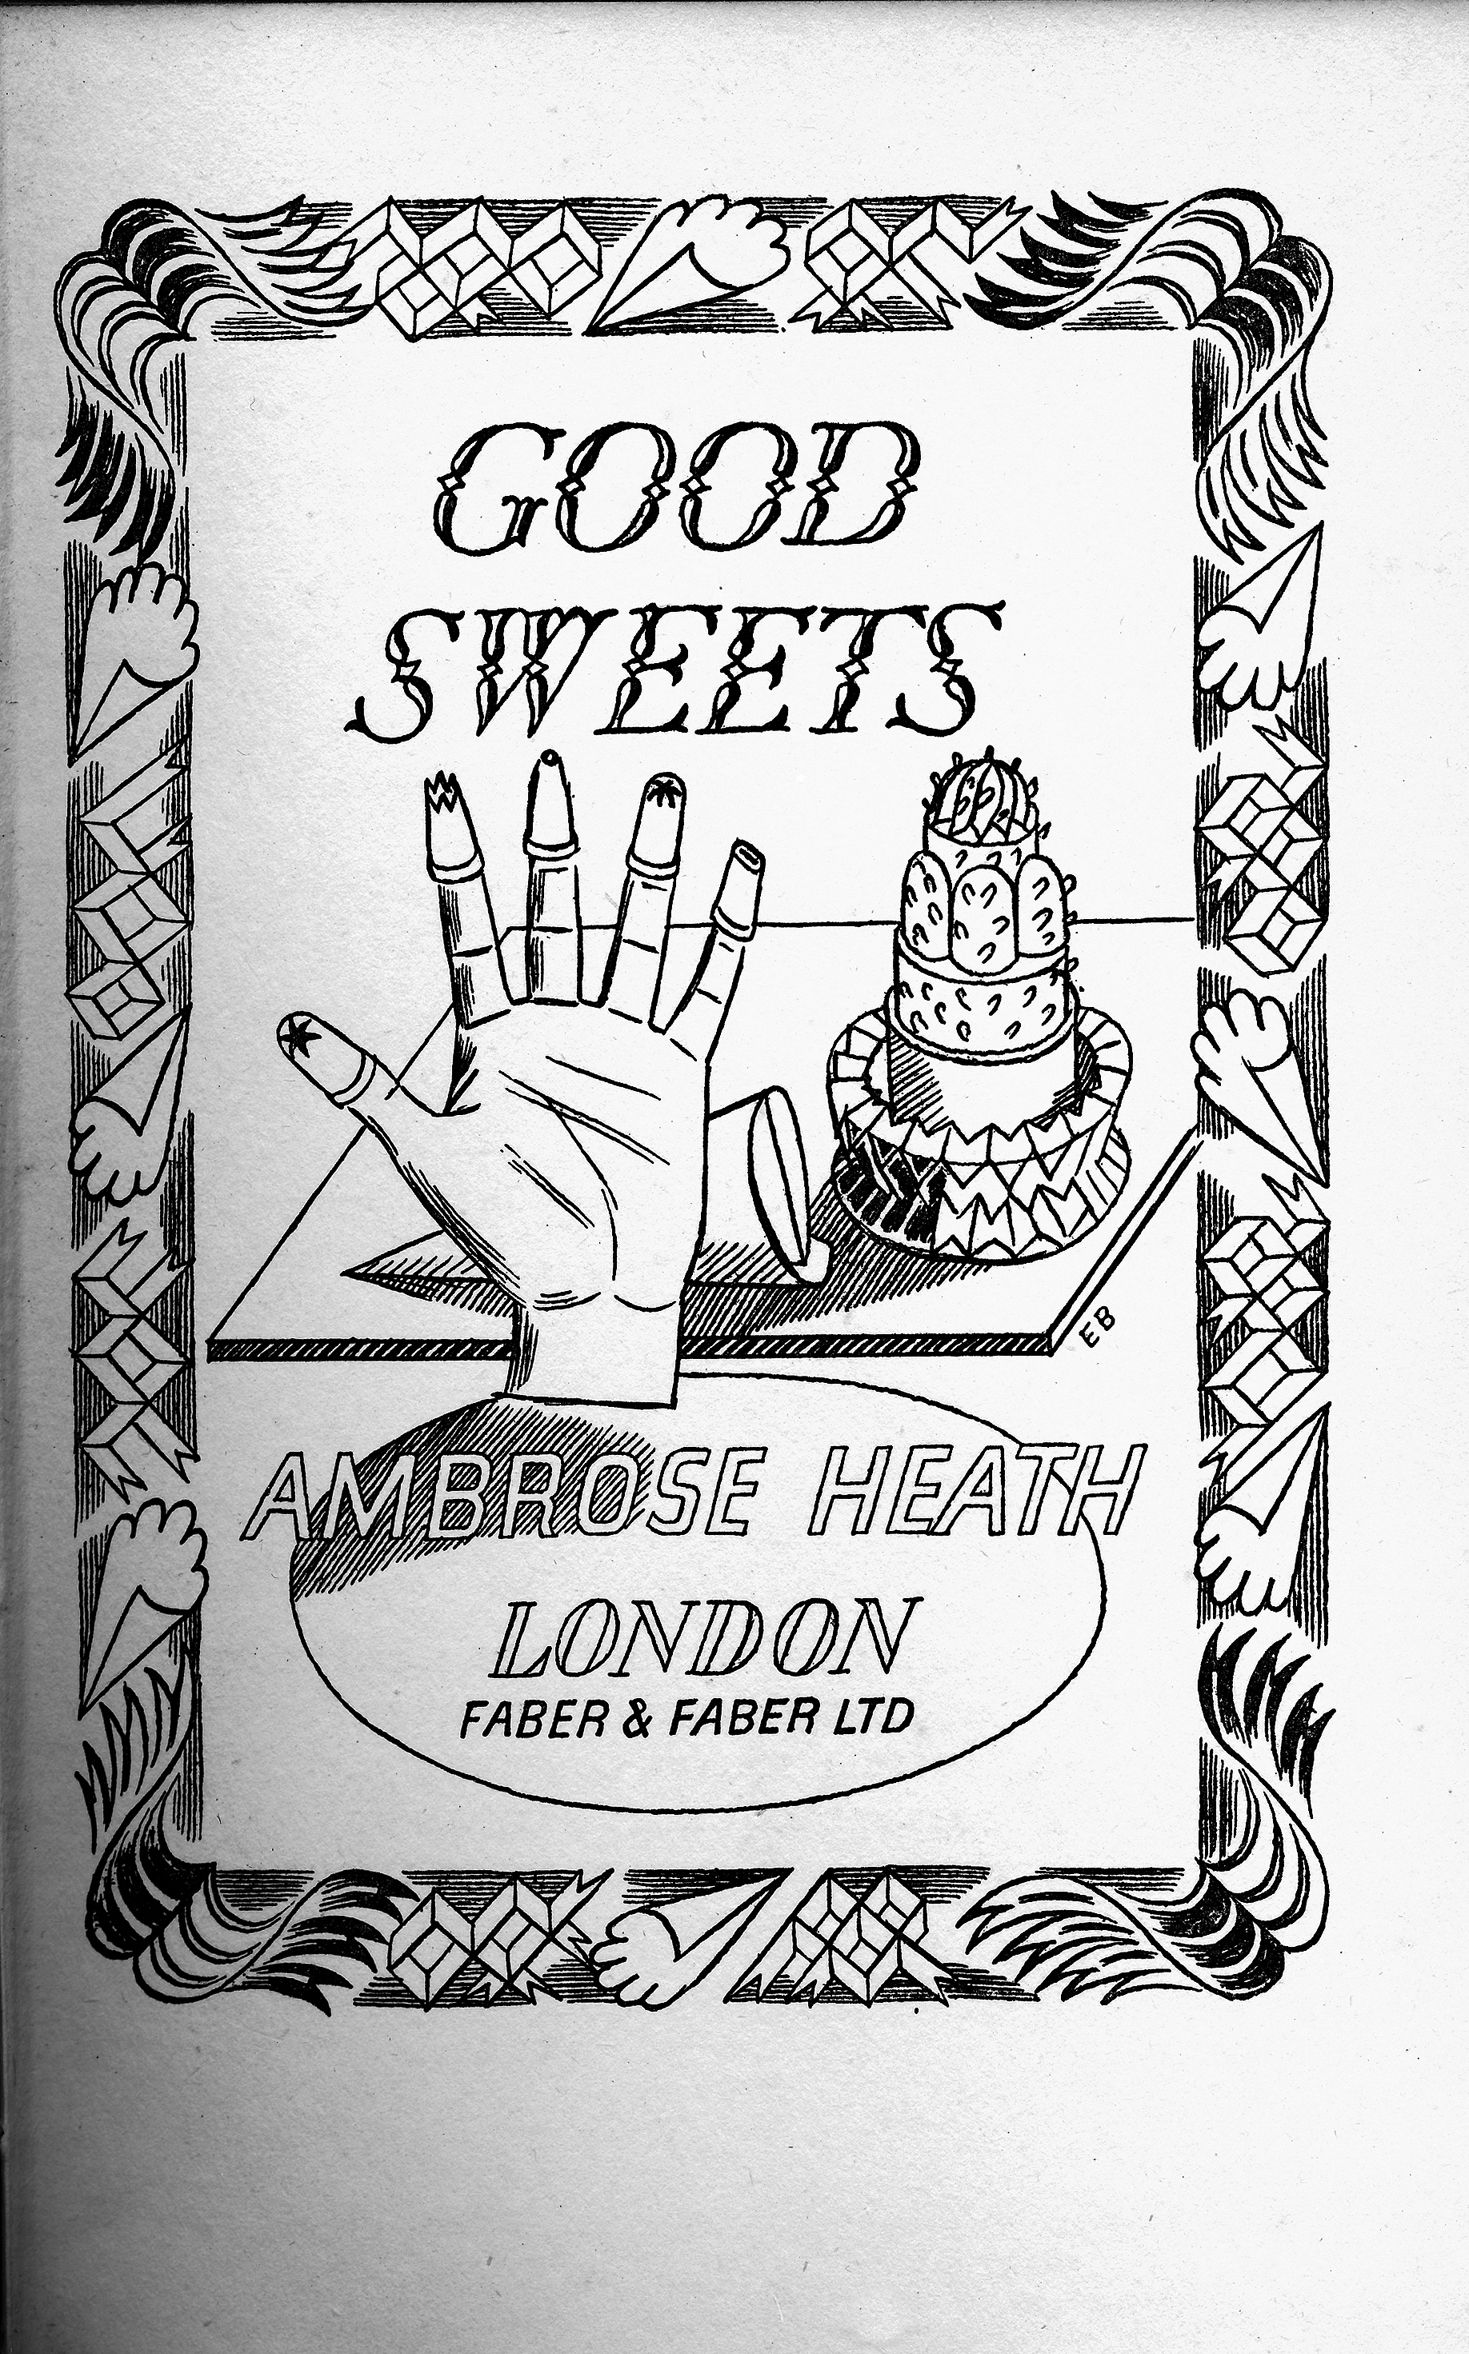 Title Page Drawing By Edward Bawden For Good Sweets By